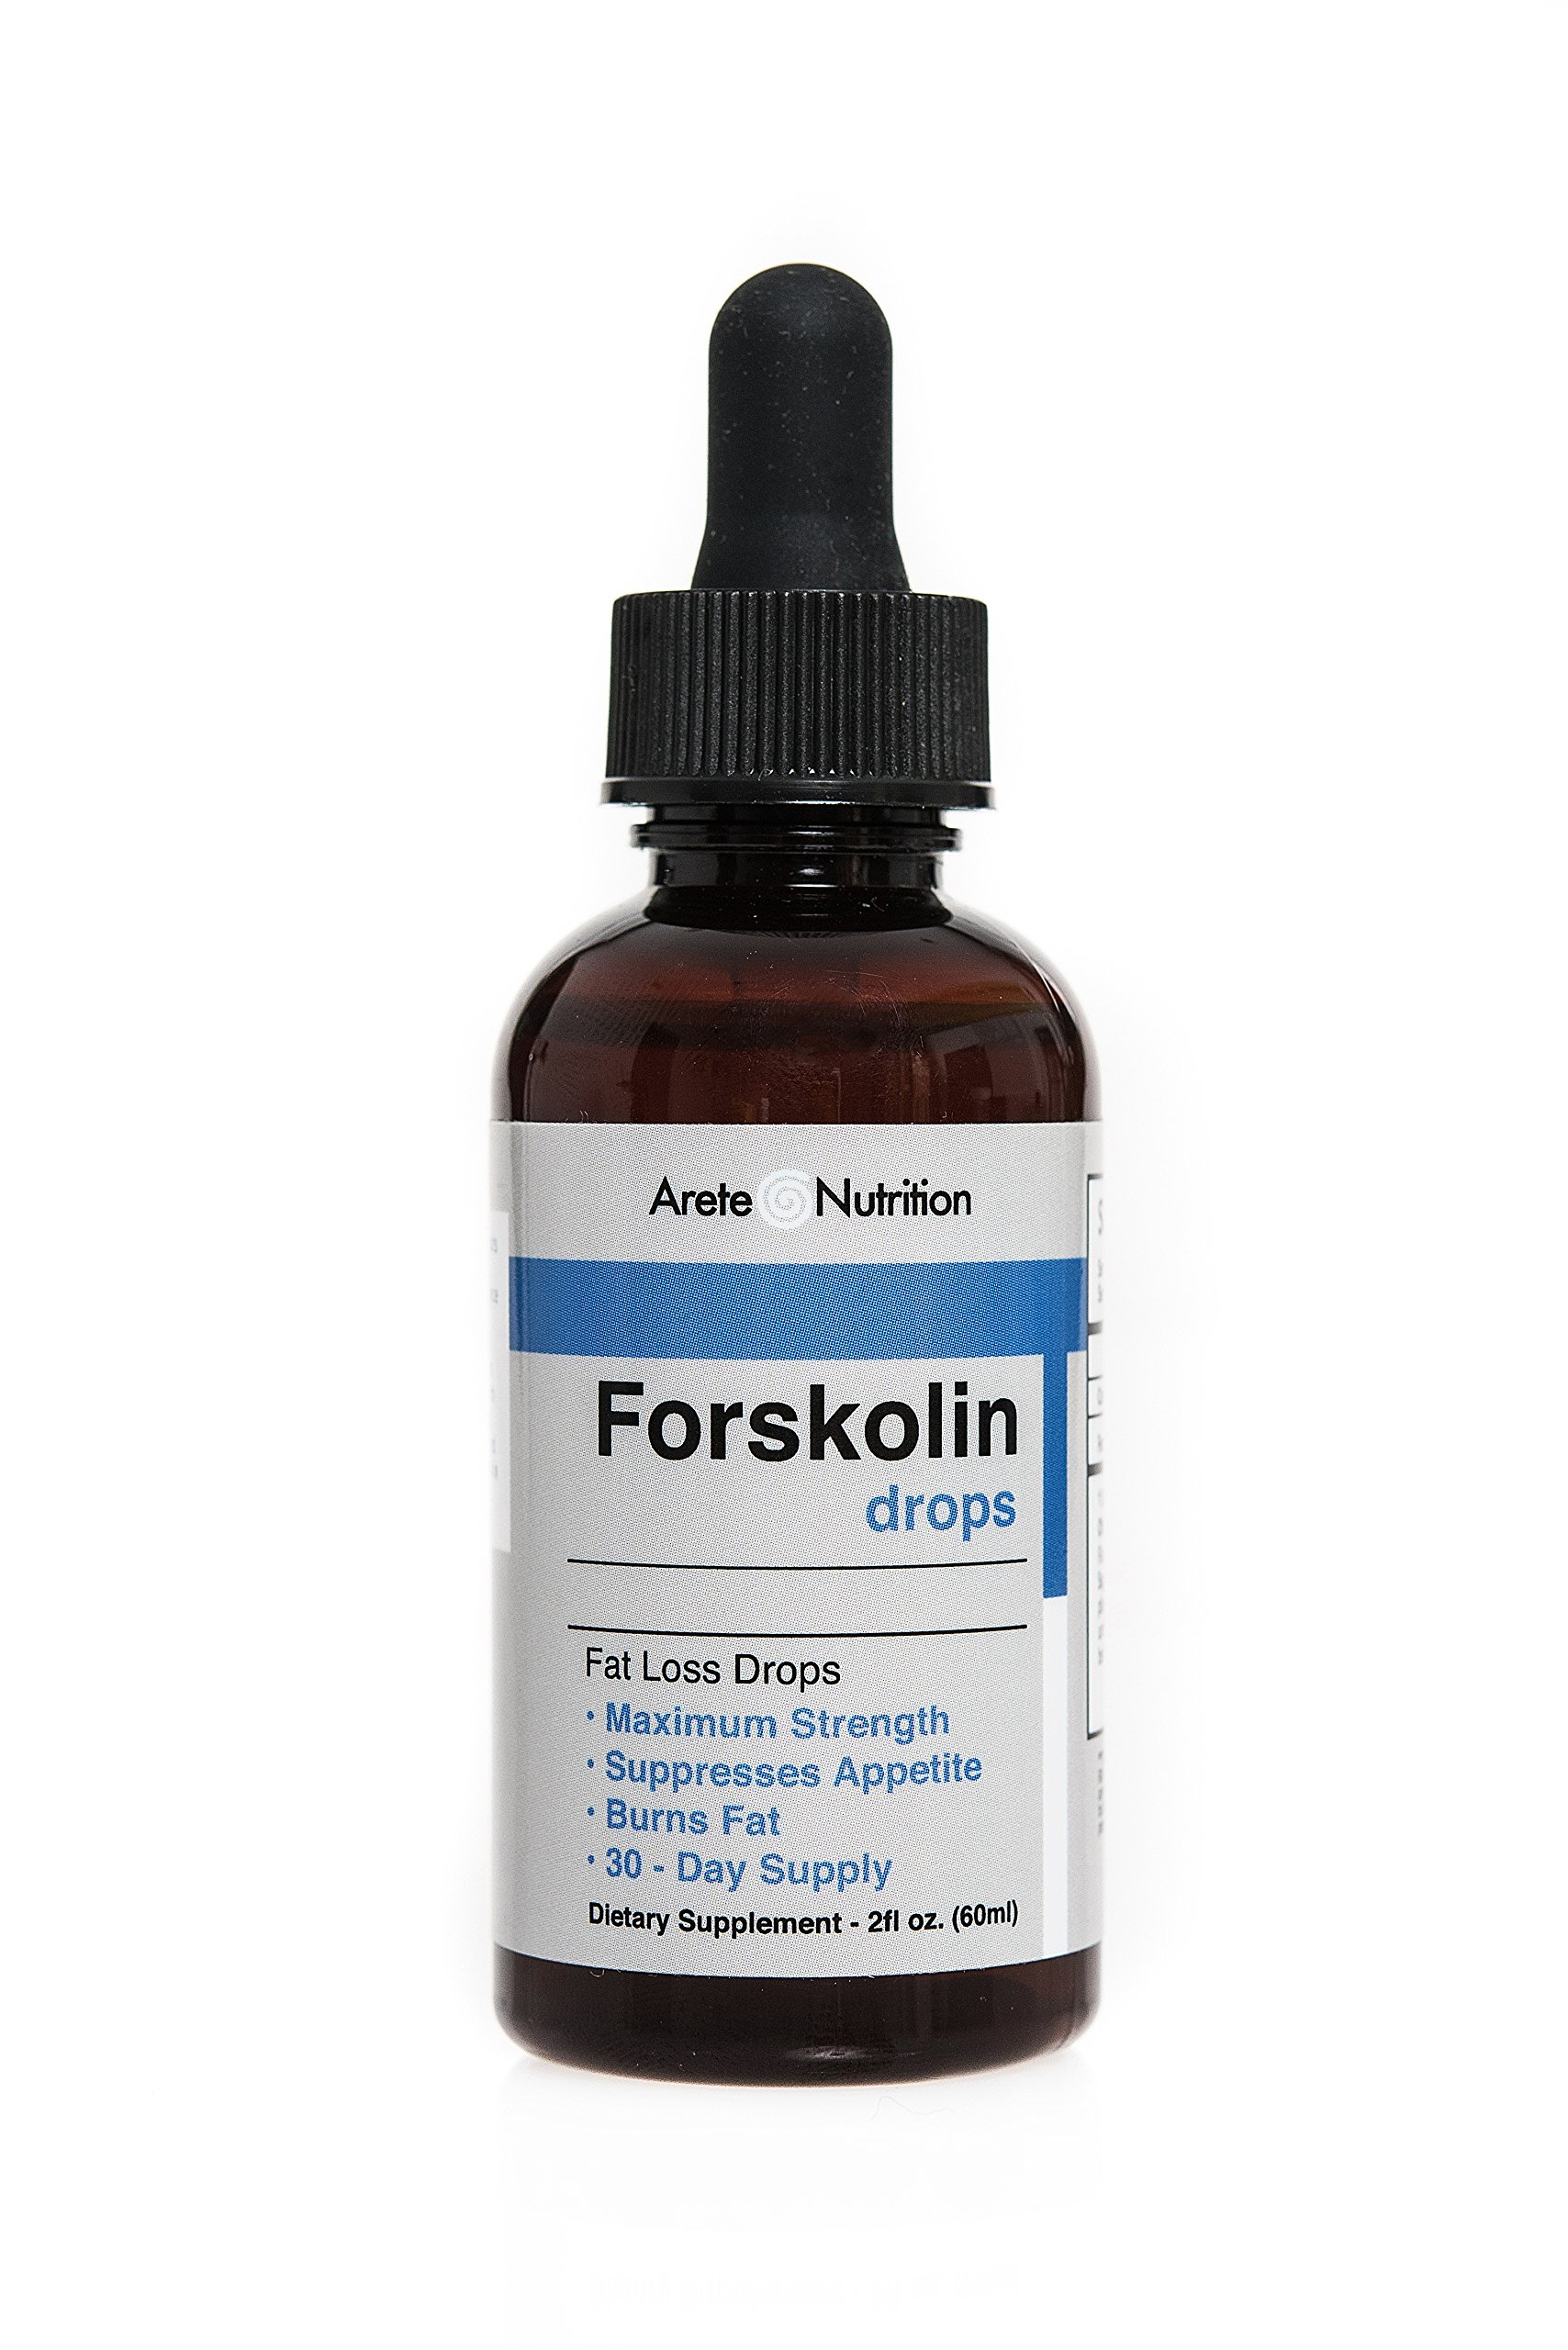 Arete Forskolin Liquid Drops Extract Natural Appetite Control - 100% Natural Weightloss Fast Absorbing Sublinguel Supplement by Arete Nutrition - Live Healthy Products